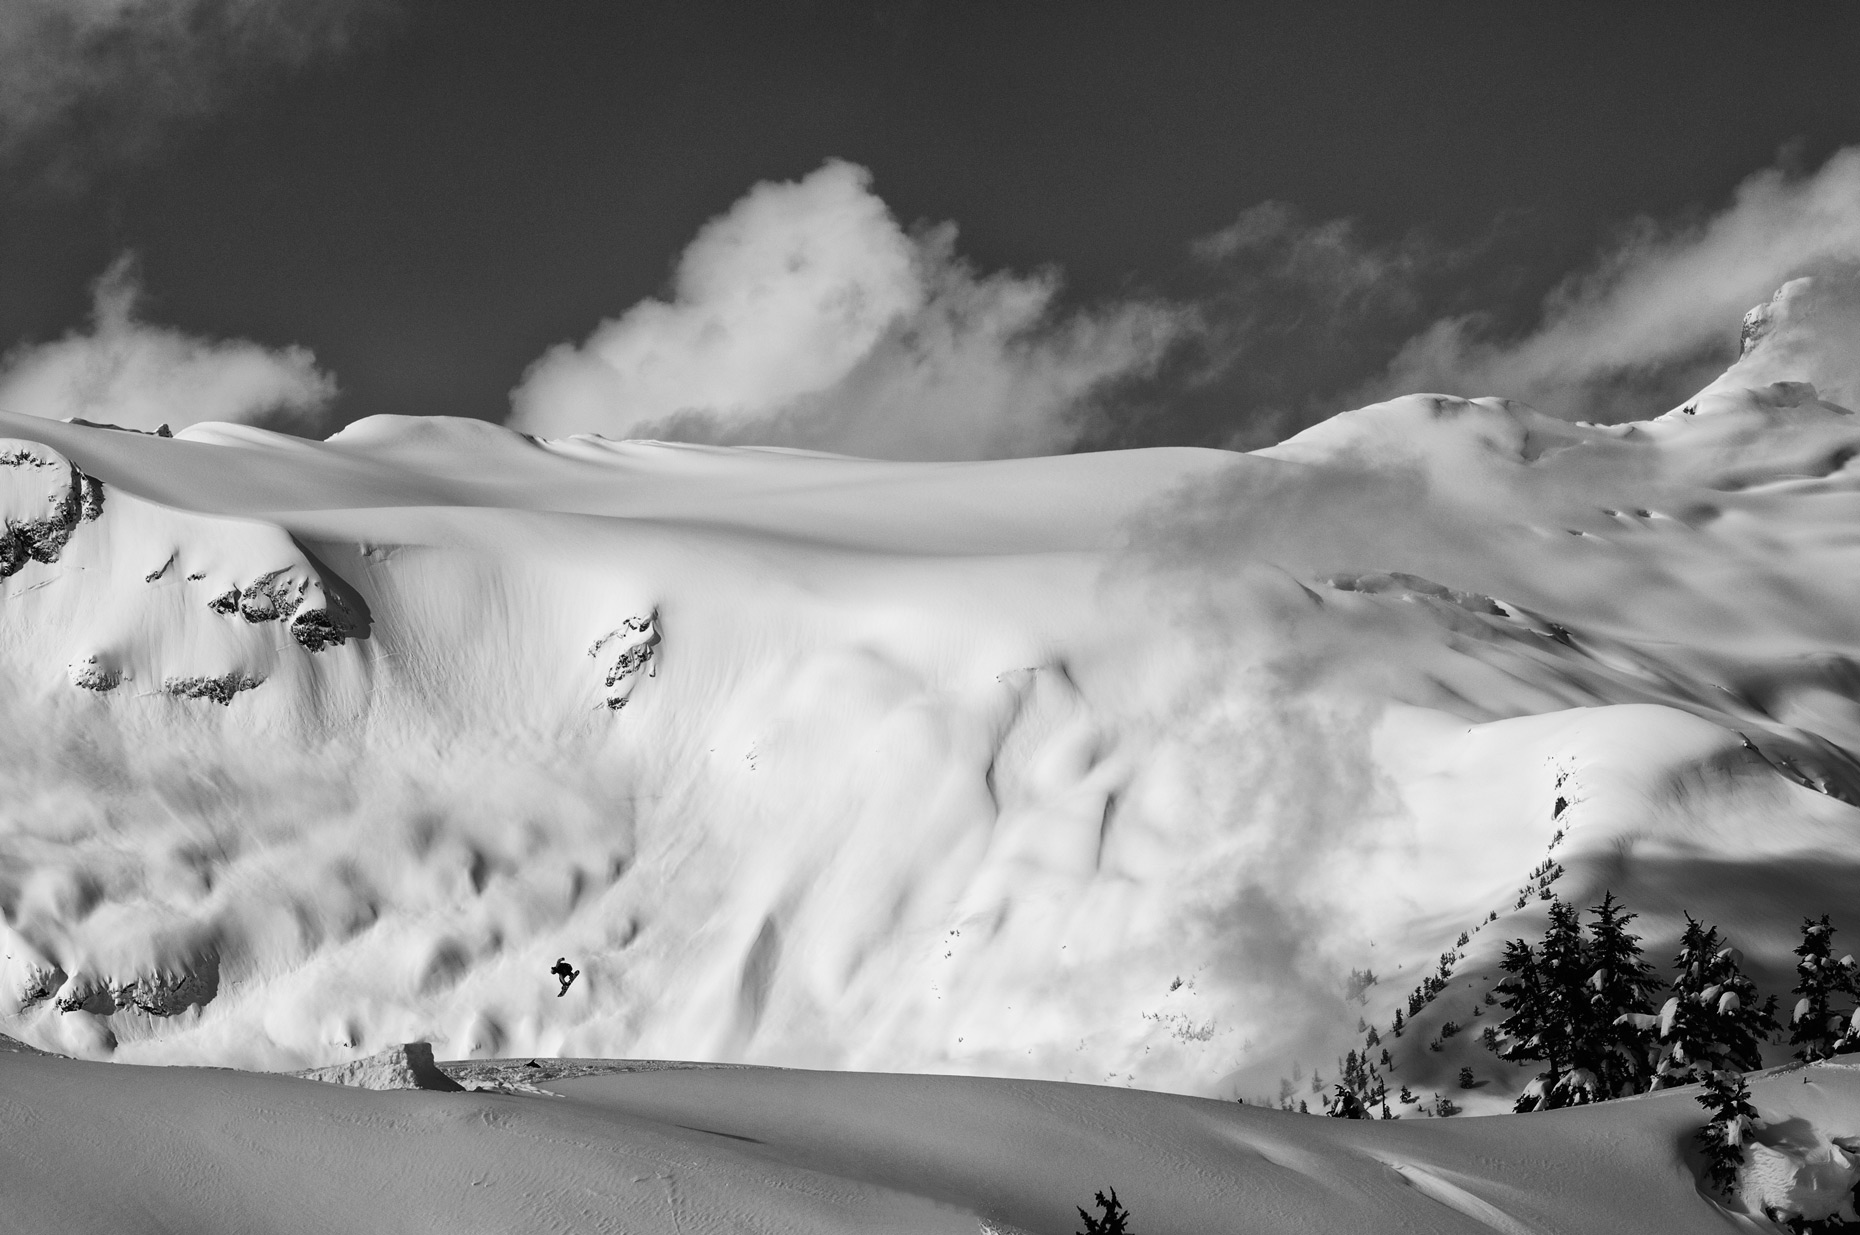 Marco_Smolla_Black_and_White_02_Whistler_BC_Backcountry